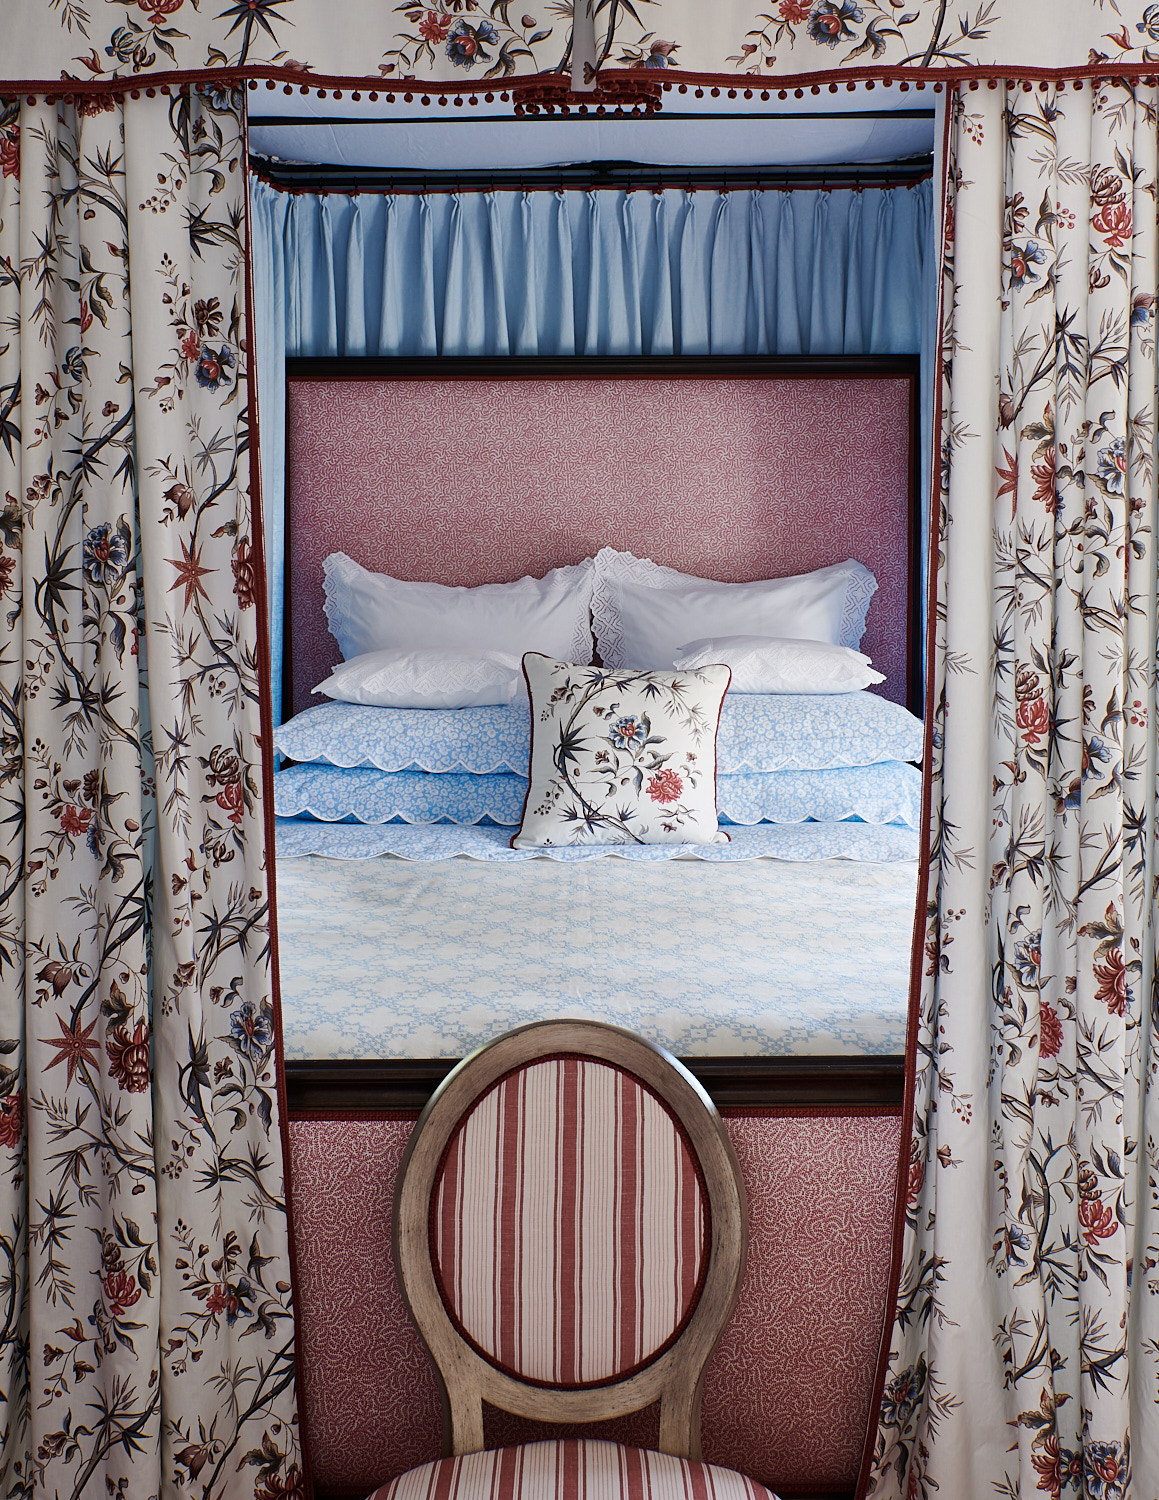 Patterned Bed Canopy Drapery